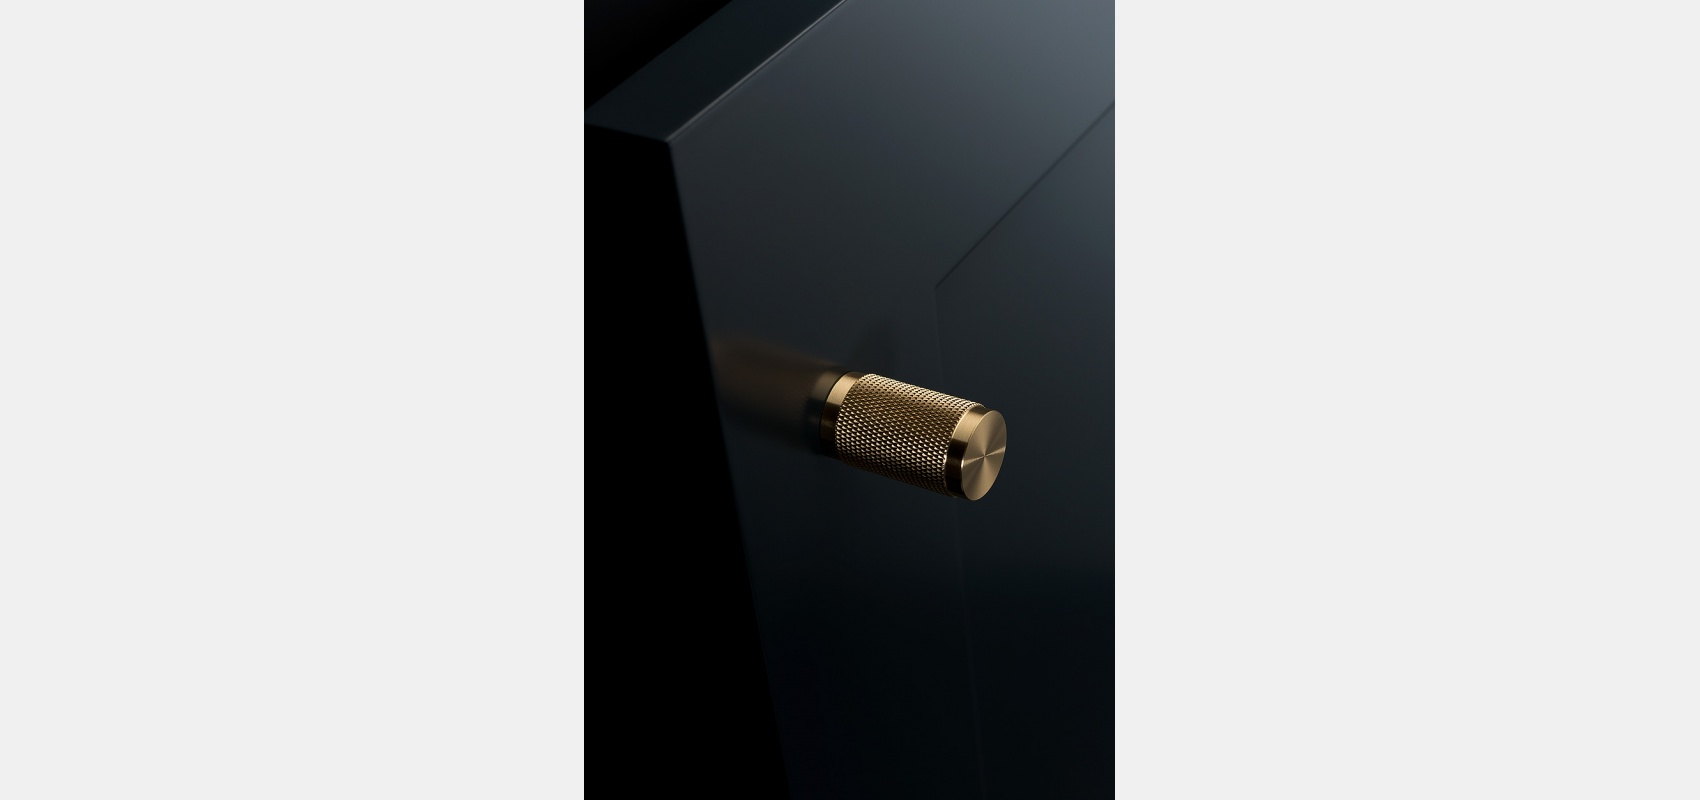 Product photography/ Interior fittings/close up/ brass knurled/ cabinet handle.